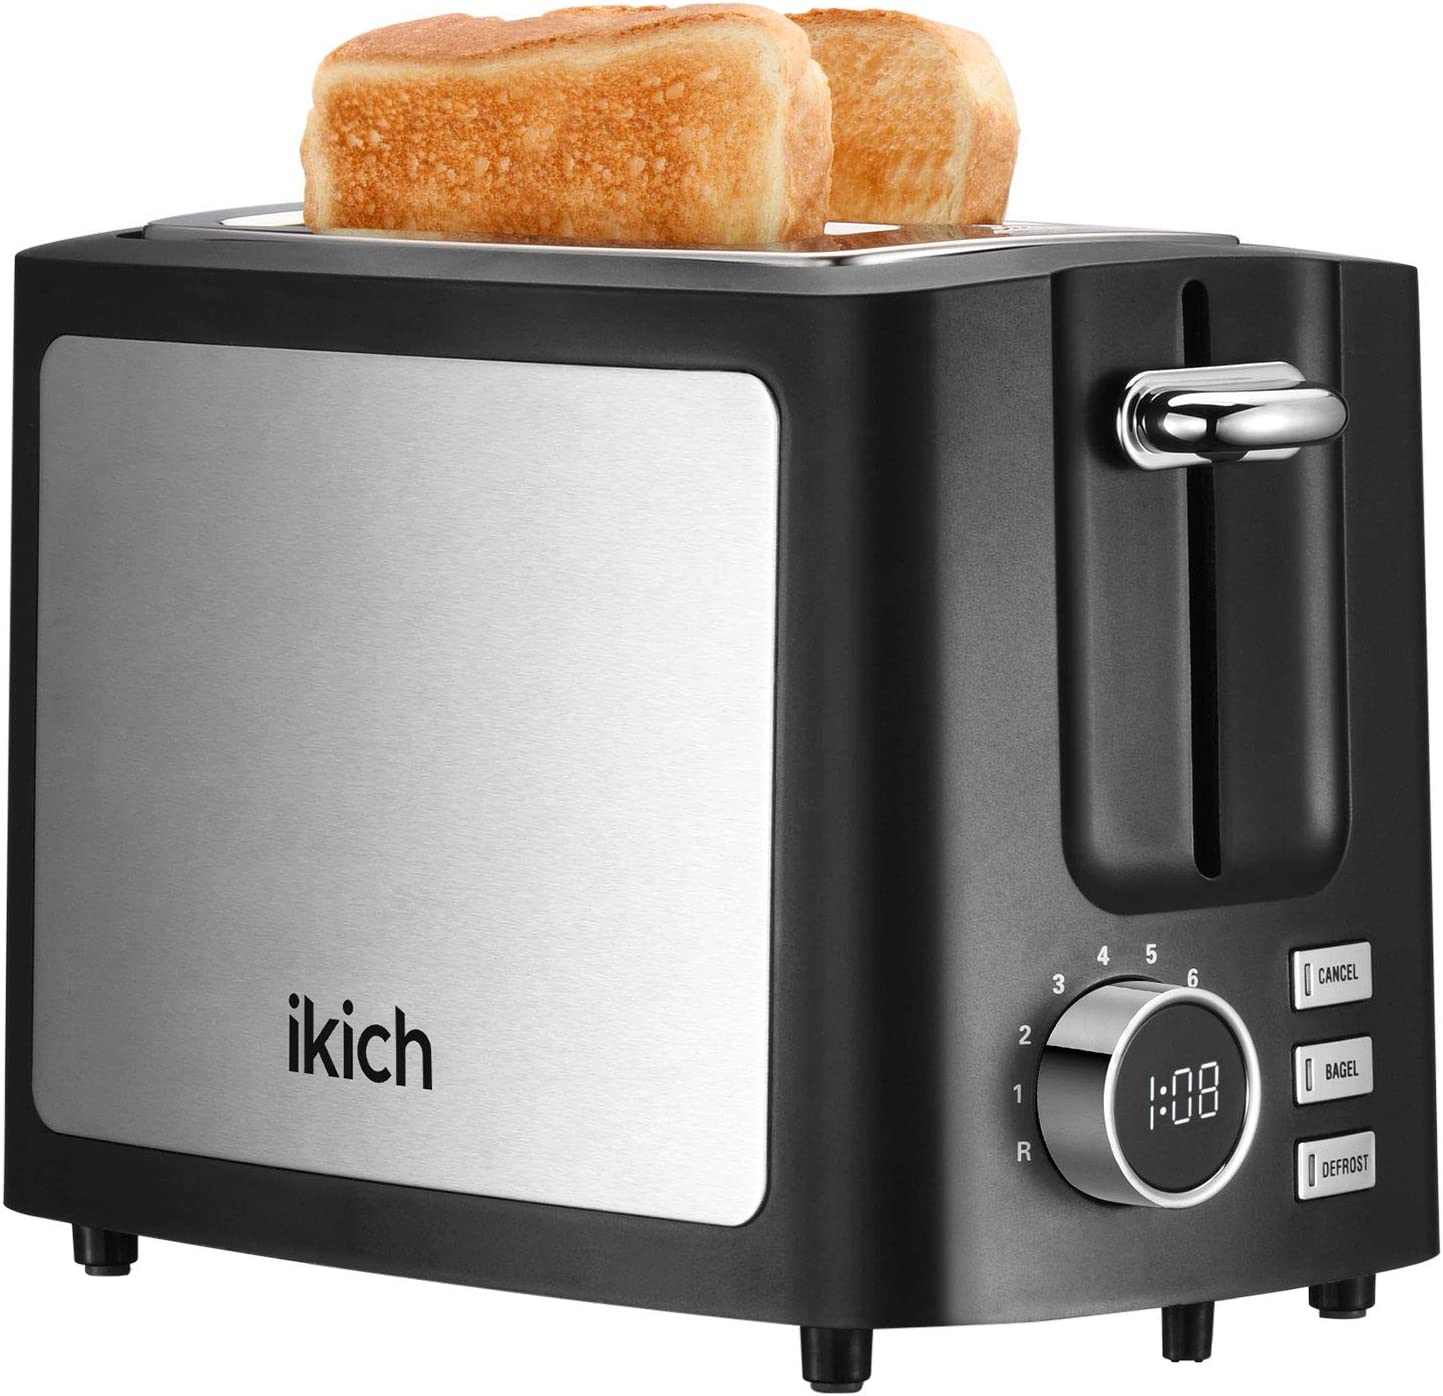 Toaster 2 Slice, IKICH 9 Bread Shade Settings Toasters Oven, Extra Wide Slots, Stainless Steel Toaster for Waffle, Bagel, Homemade Baking(Cancel/Bagel/Defrost/Reheat Function, Removal Crumb Tray)